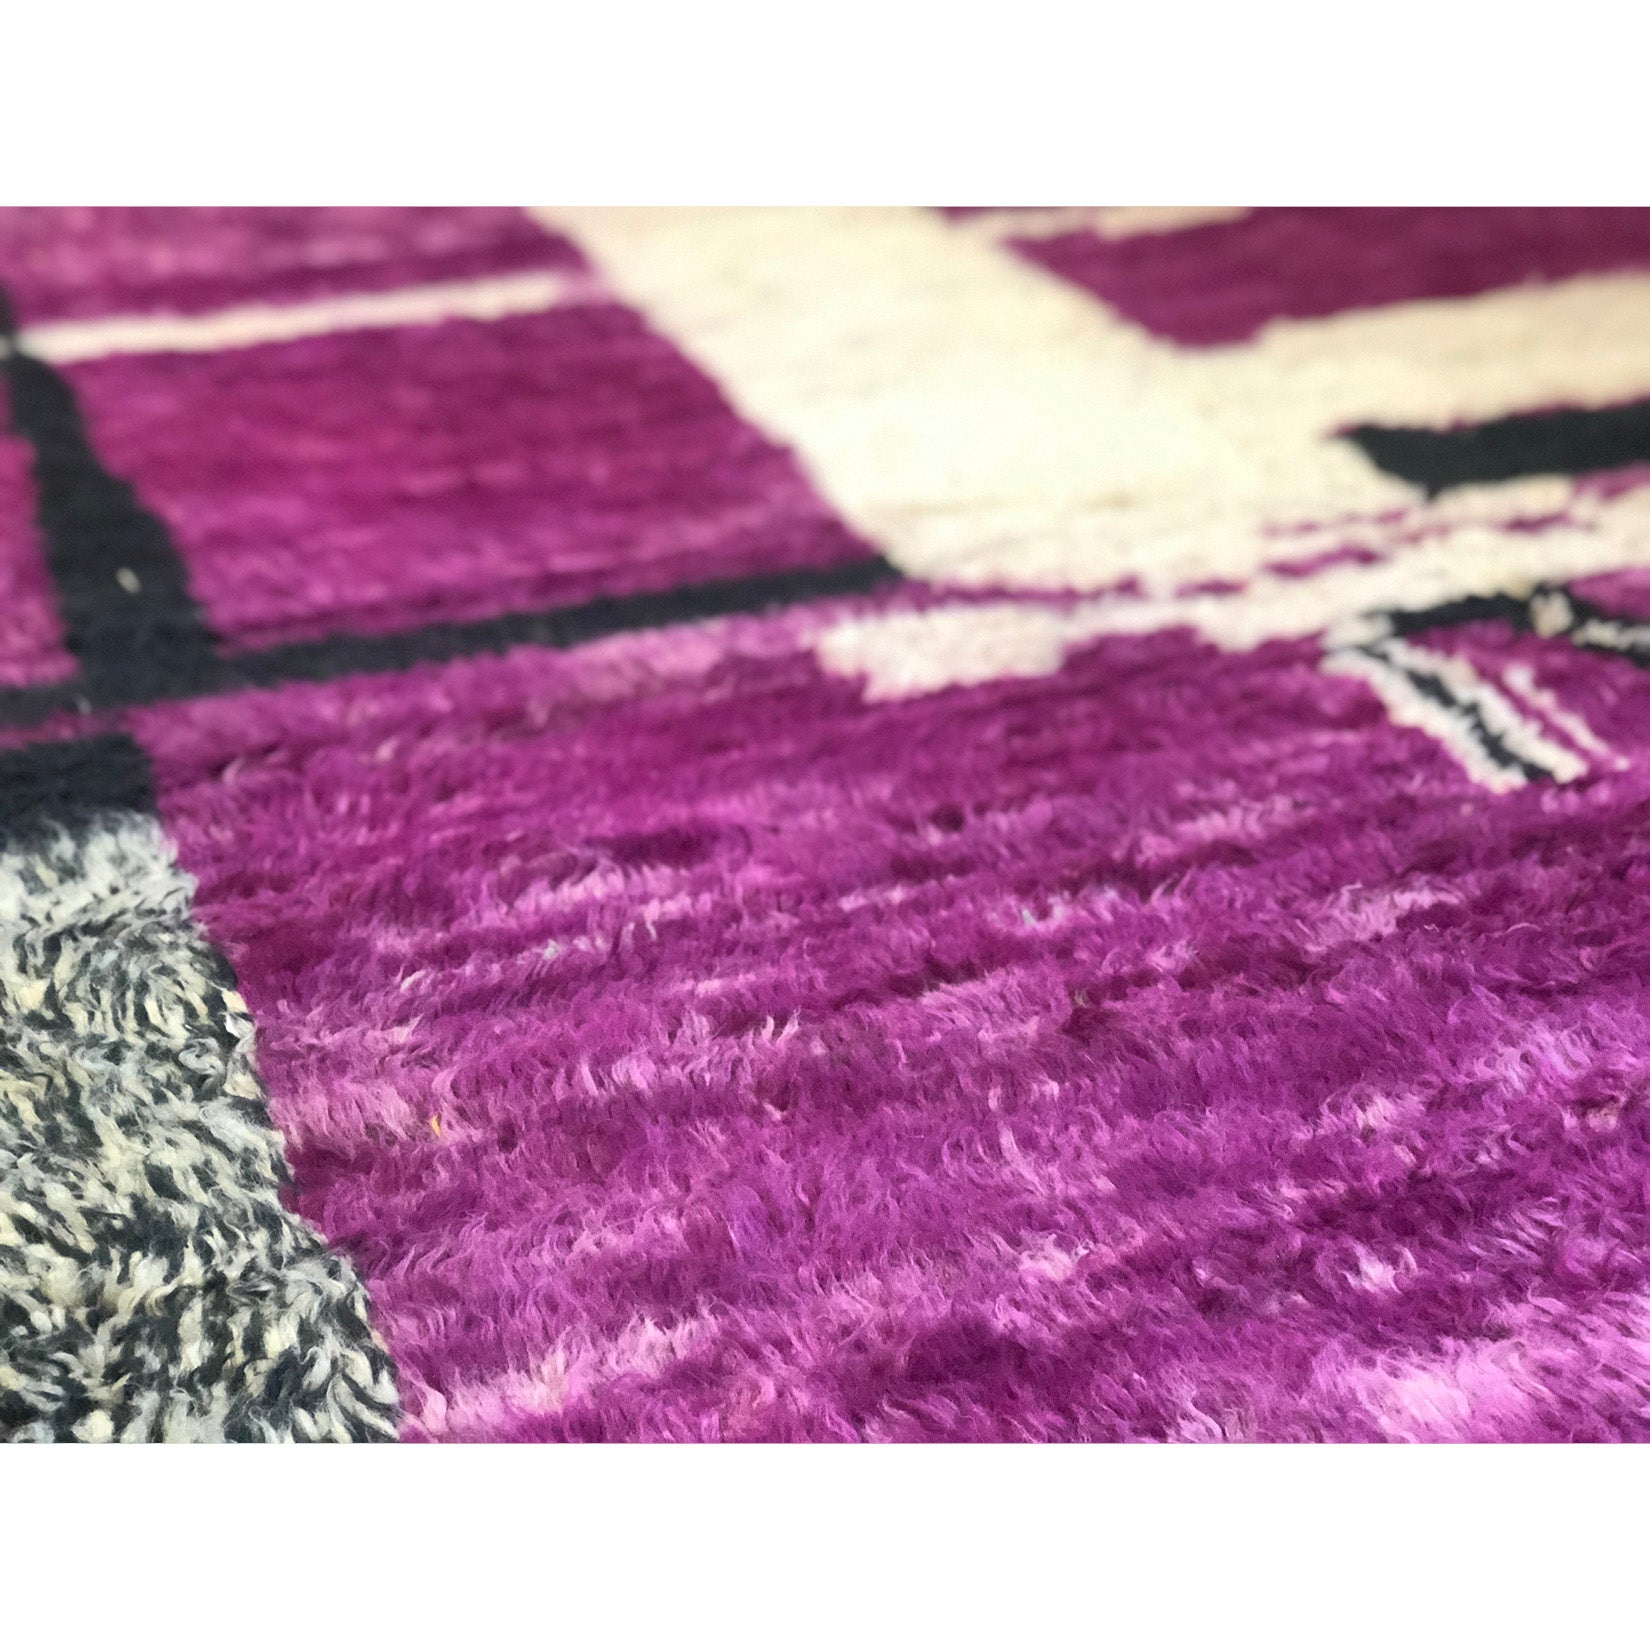 Vintage bohemian chic purple and black rug - Kantara | Moroccan Rugs